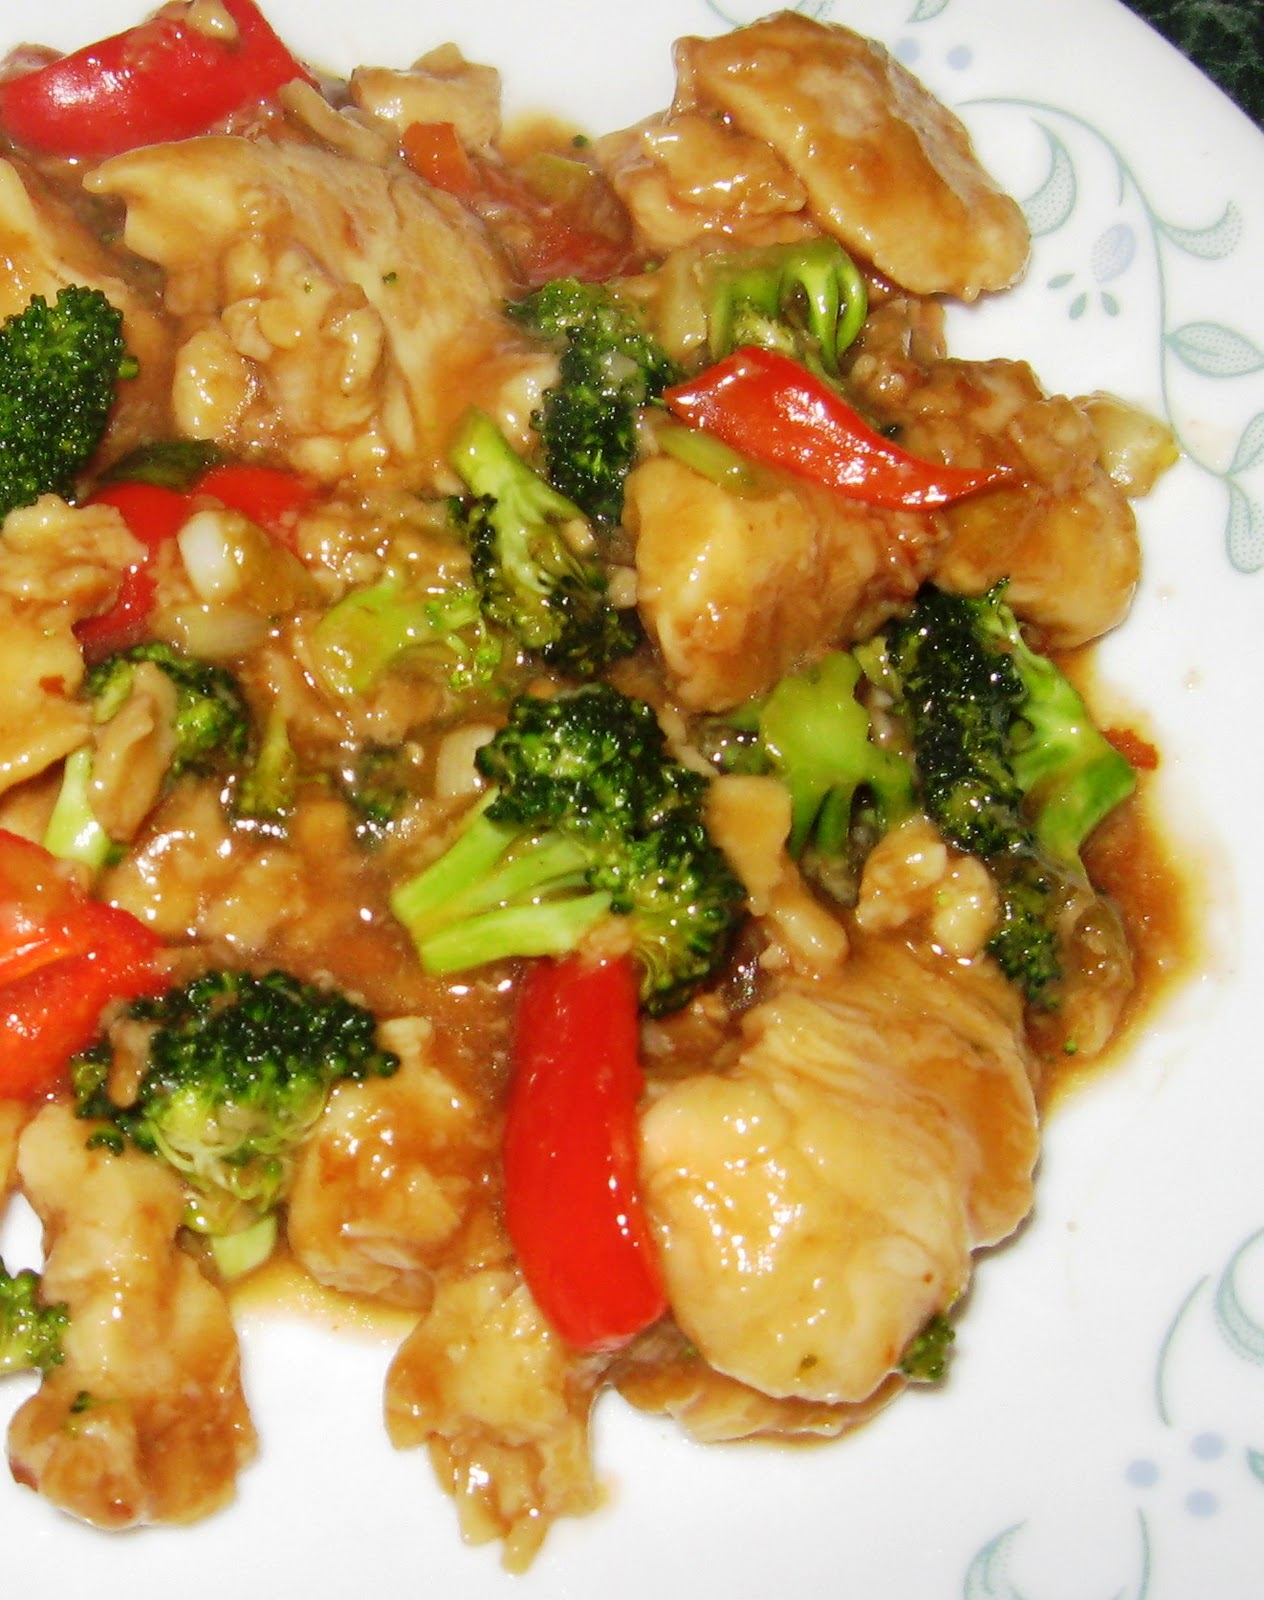 ... Does Dinner... Healthy & Low Calorie: General Tso's Chicken Stir Fry